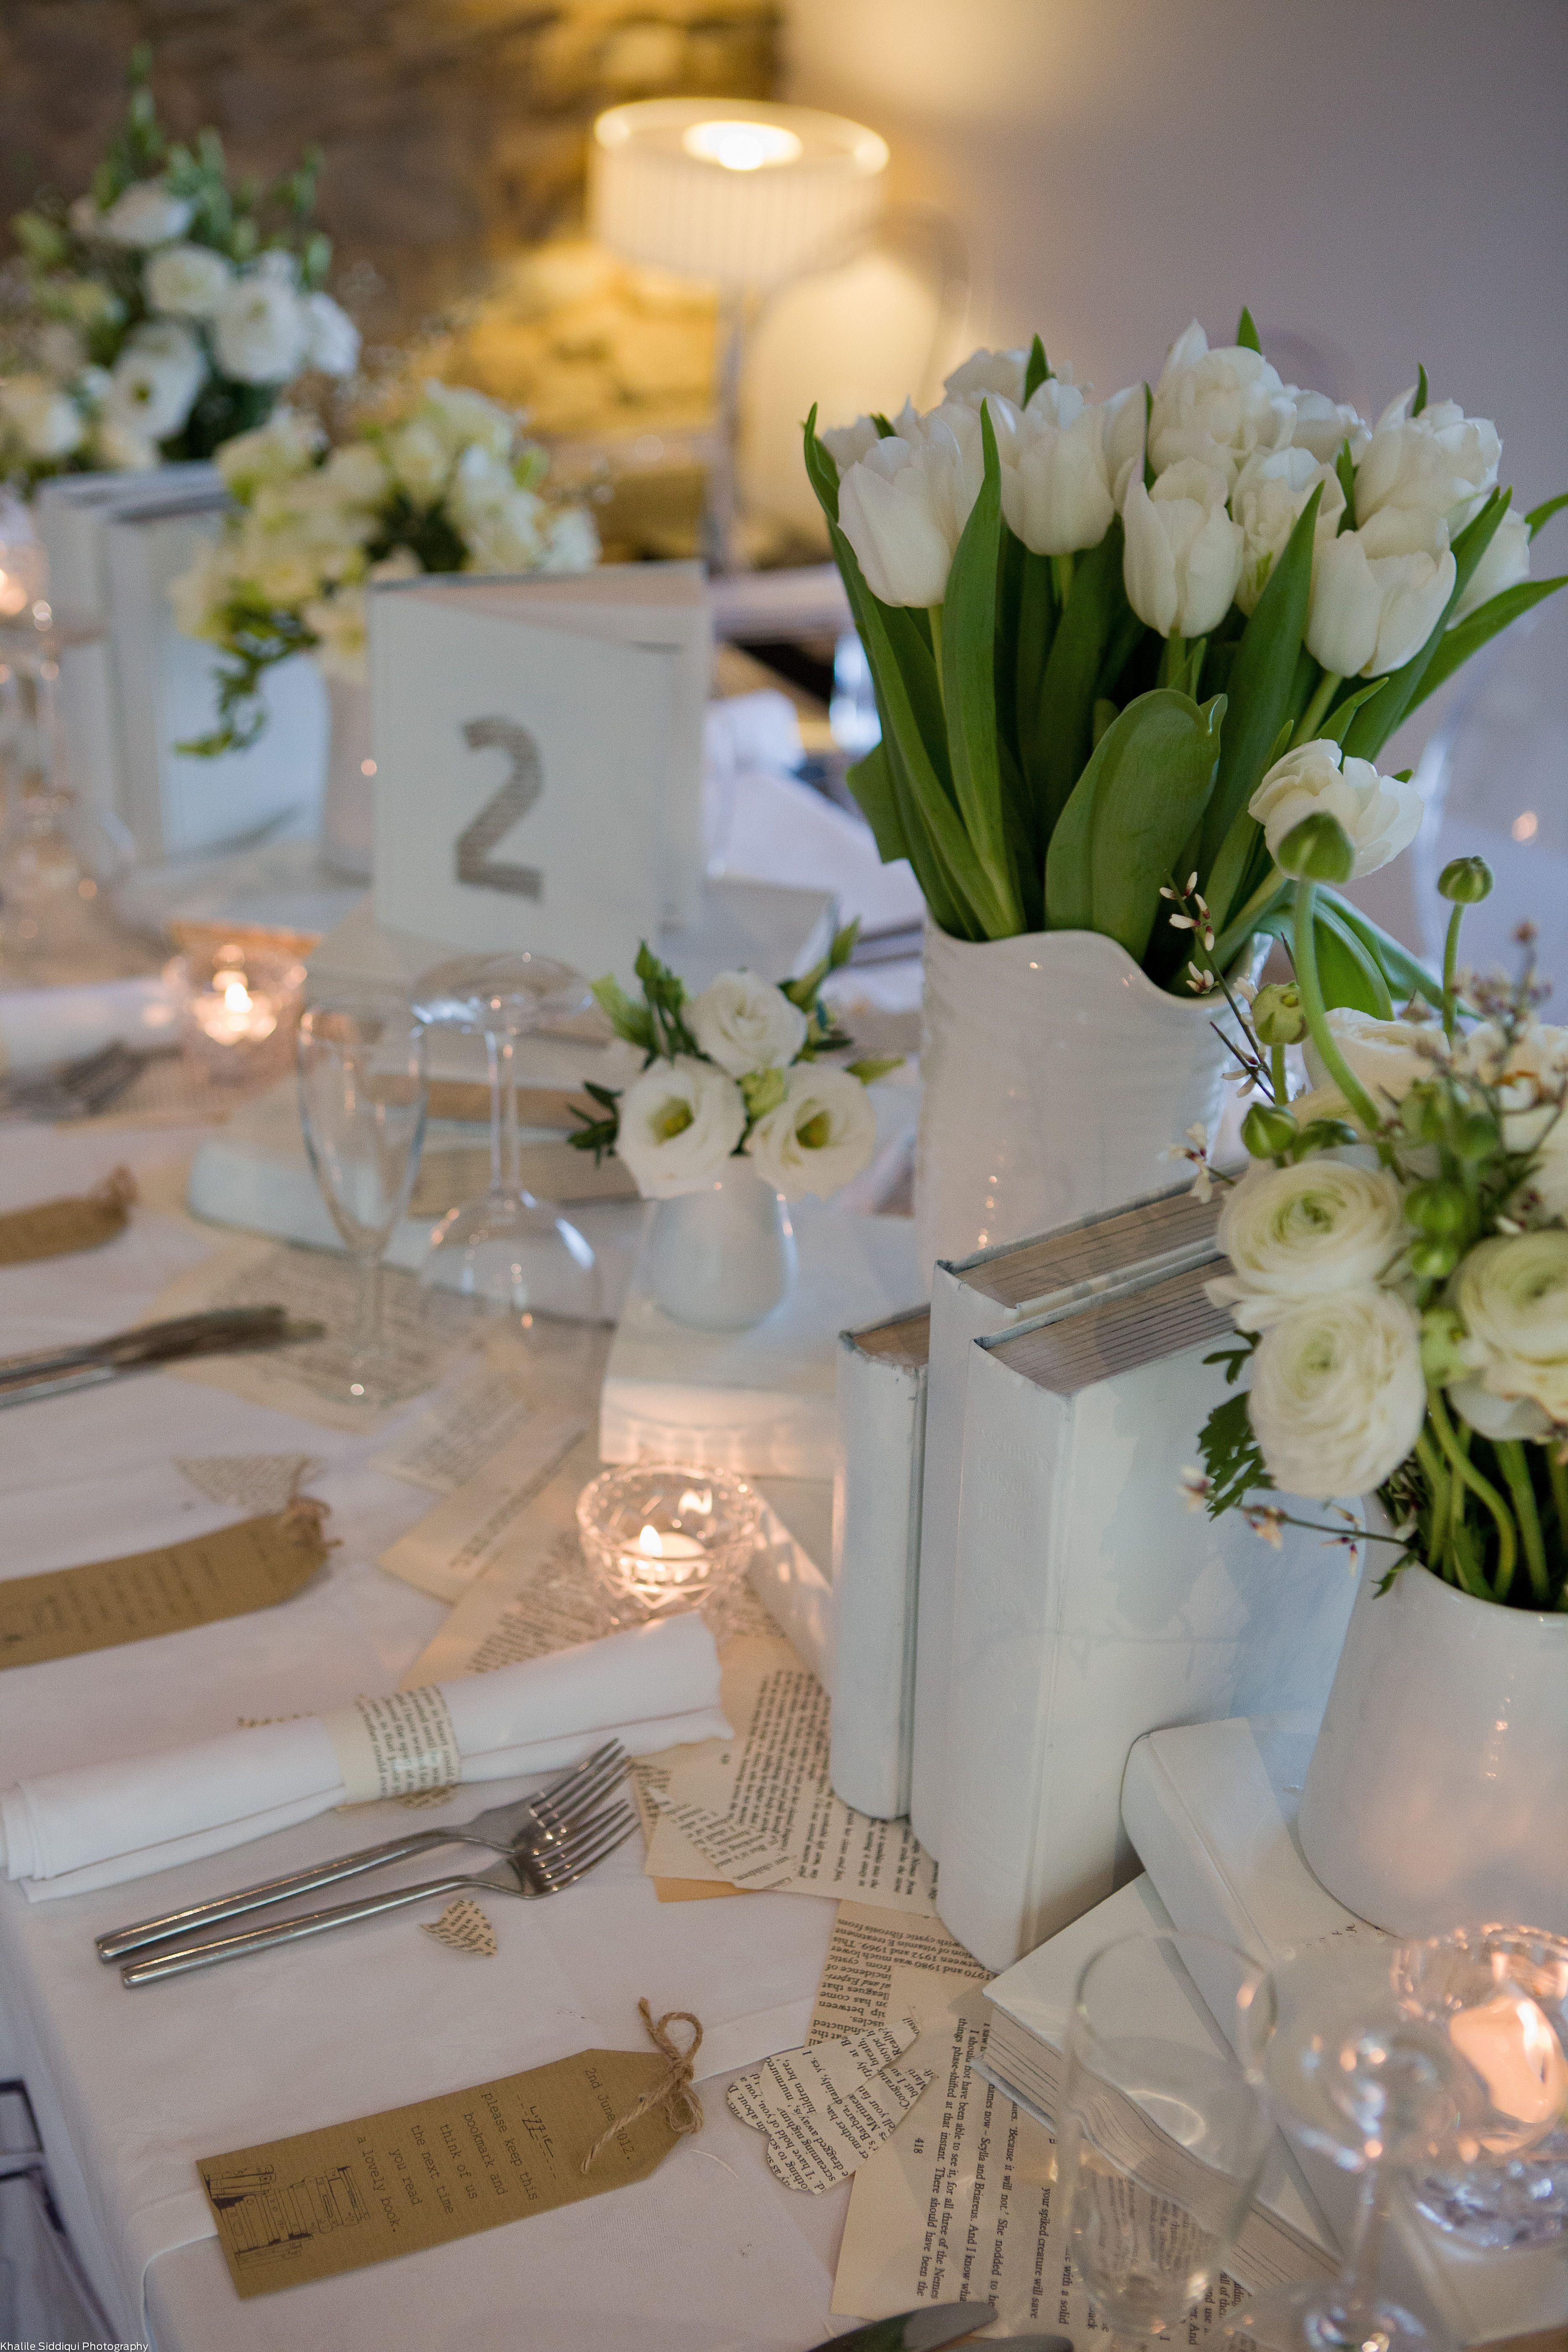 White Flowers In Small Containers Of Different Hights Along Table